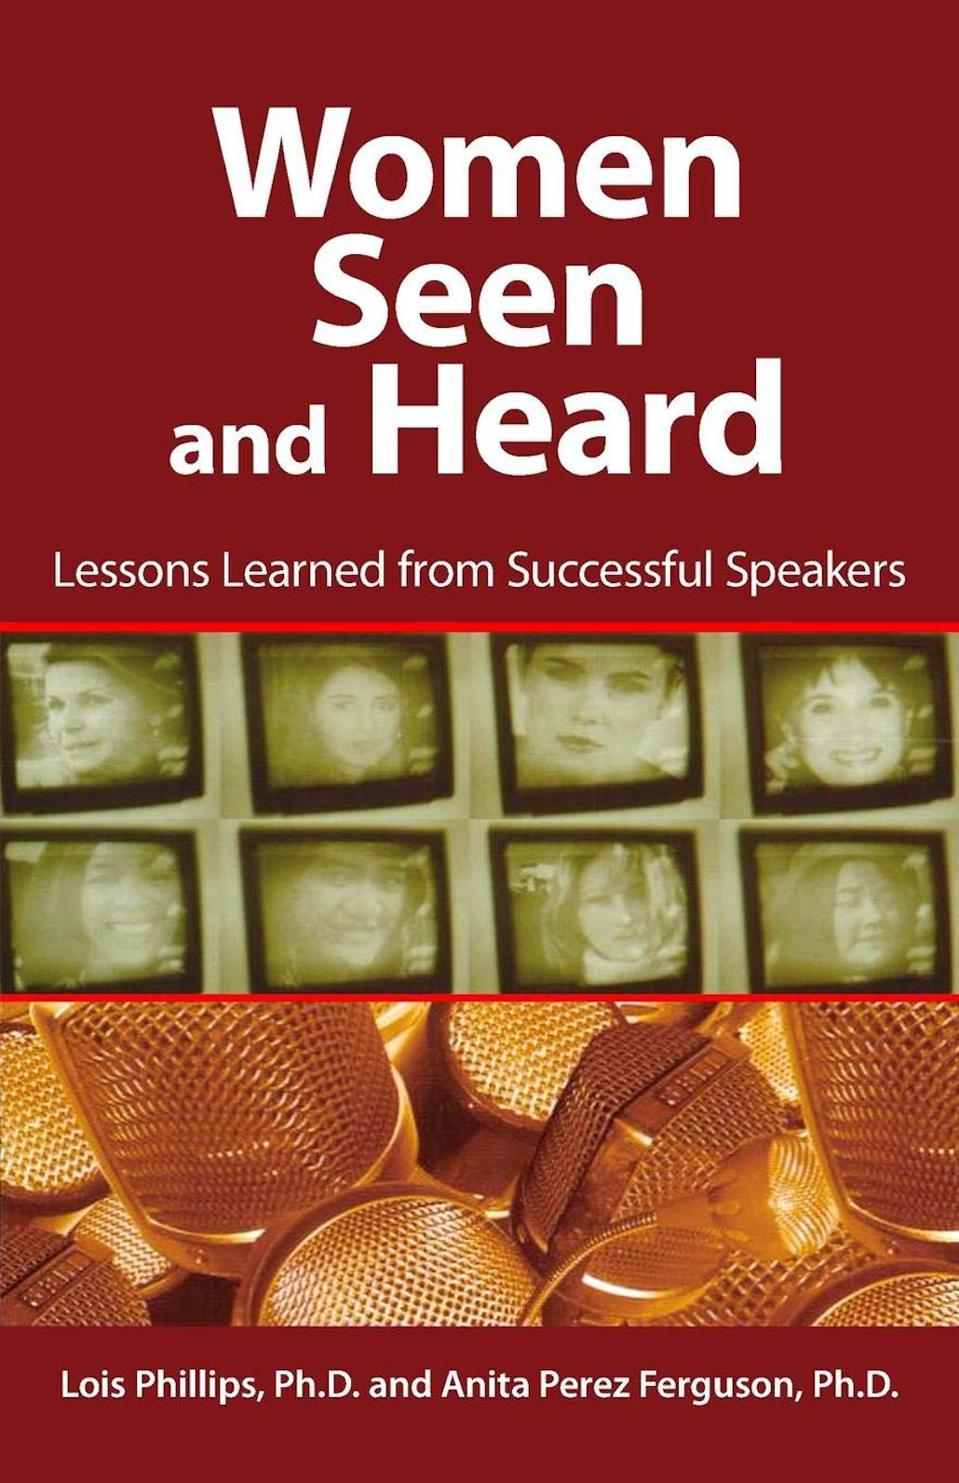 Women Seen and Heard: Lessons Learned from Successful Speakers by Lois Phillips and Anita Perez Ferguson